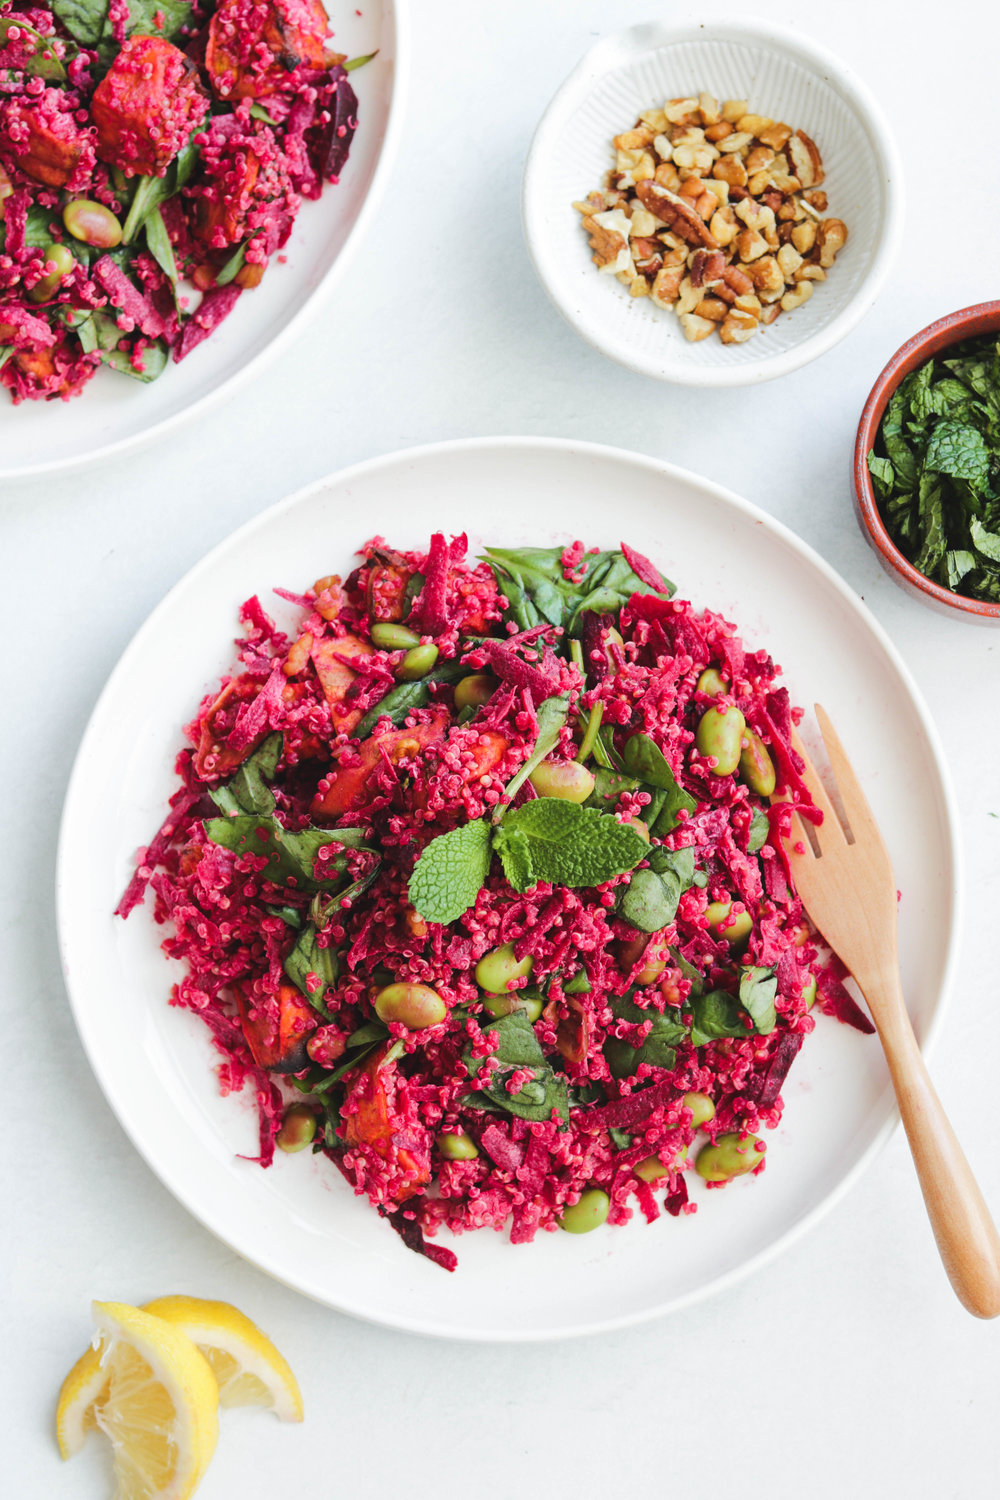 Beet Salad with Quinoa and Sunflower Seed Dressing